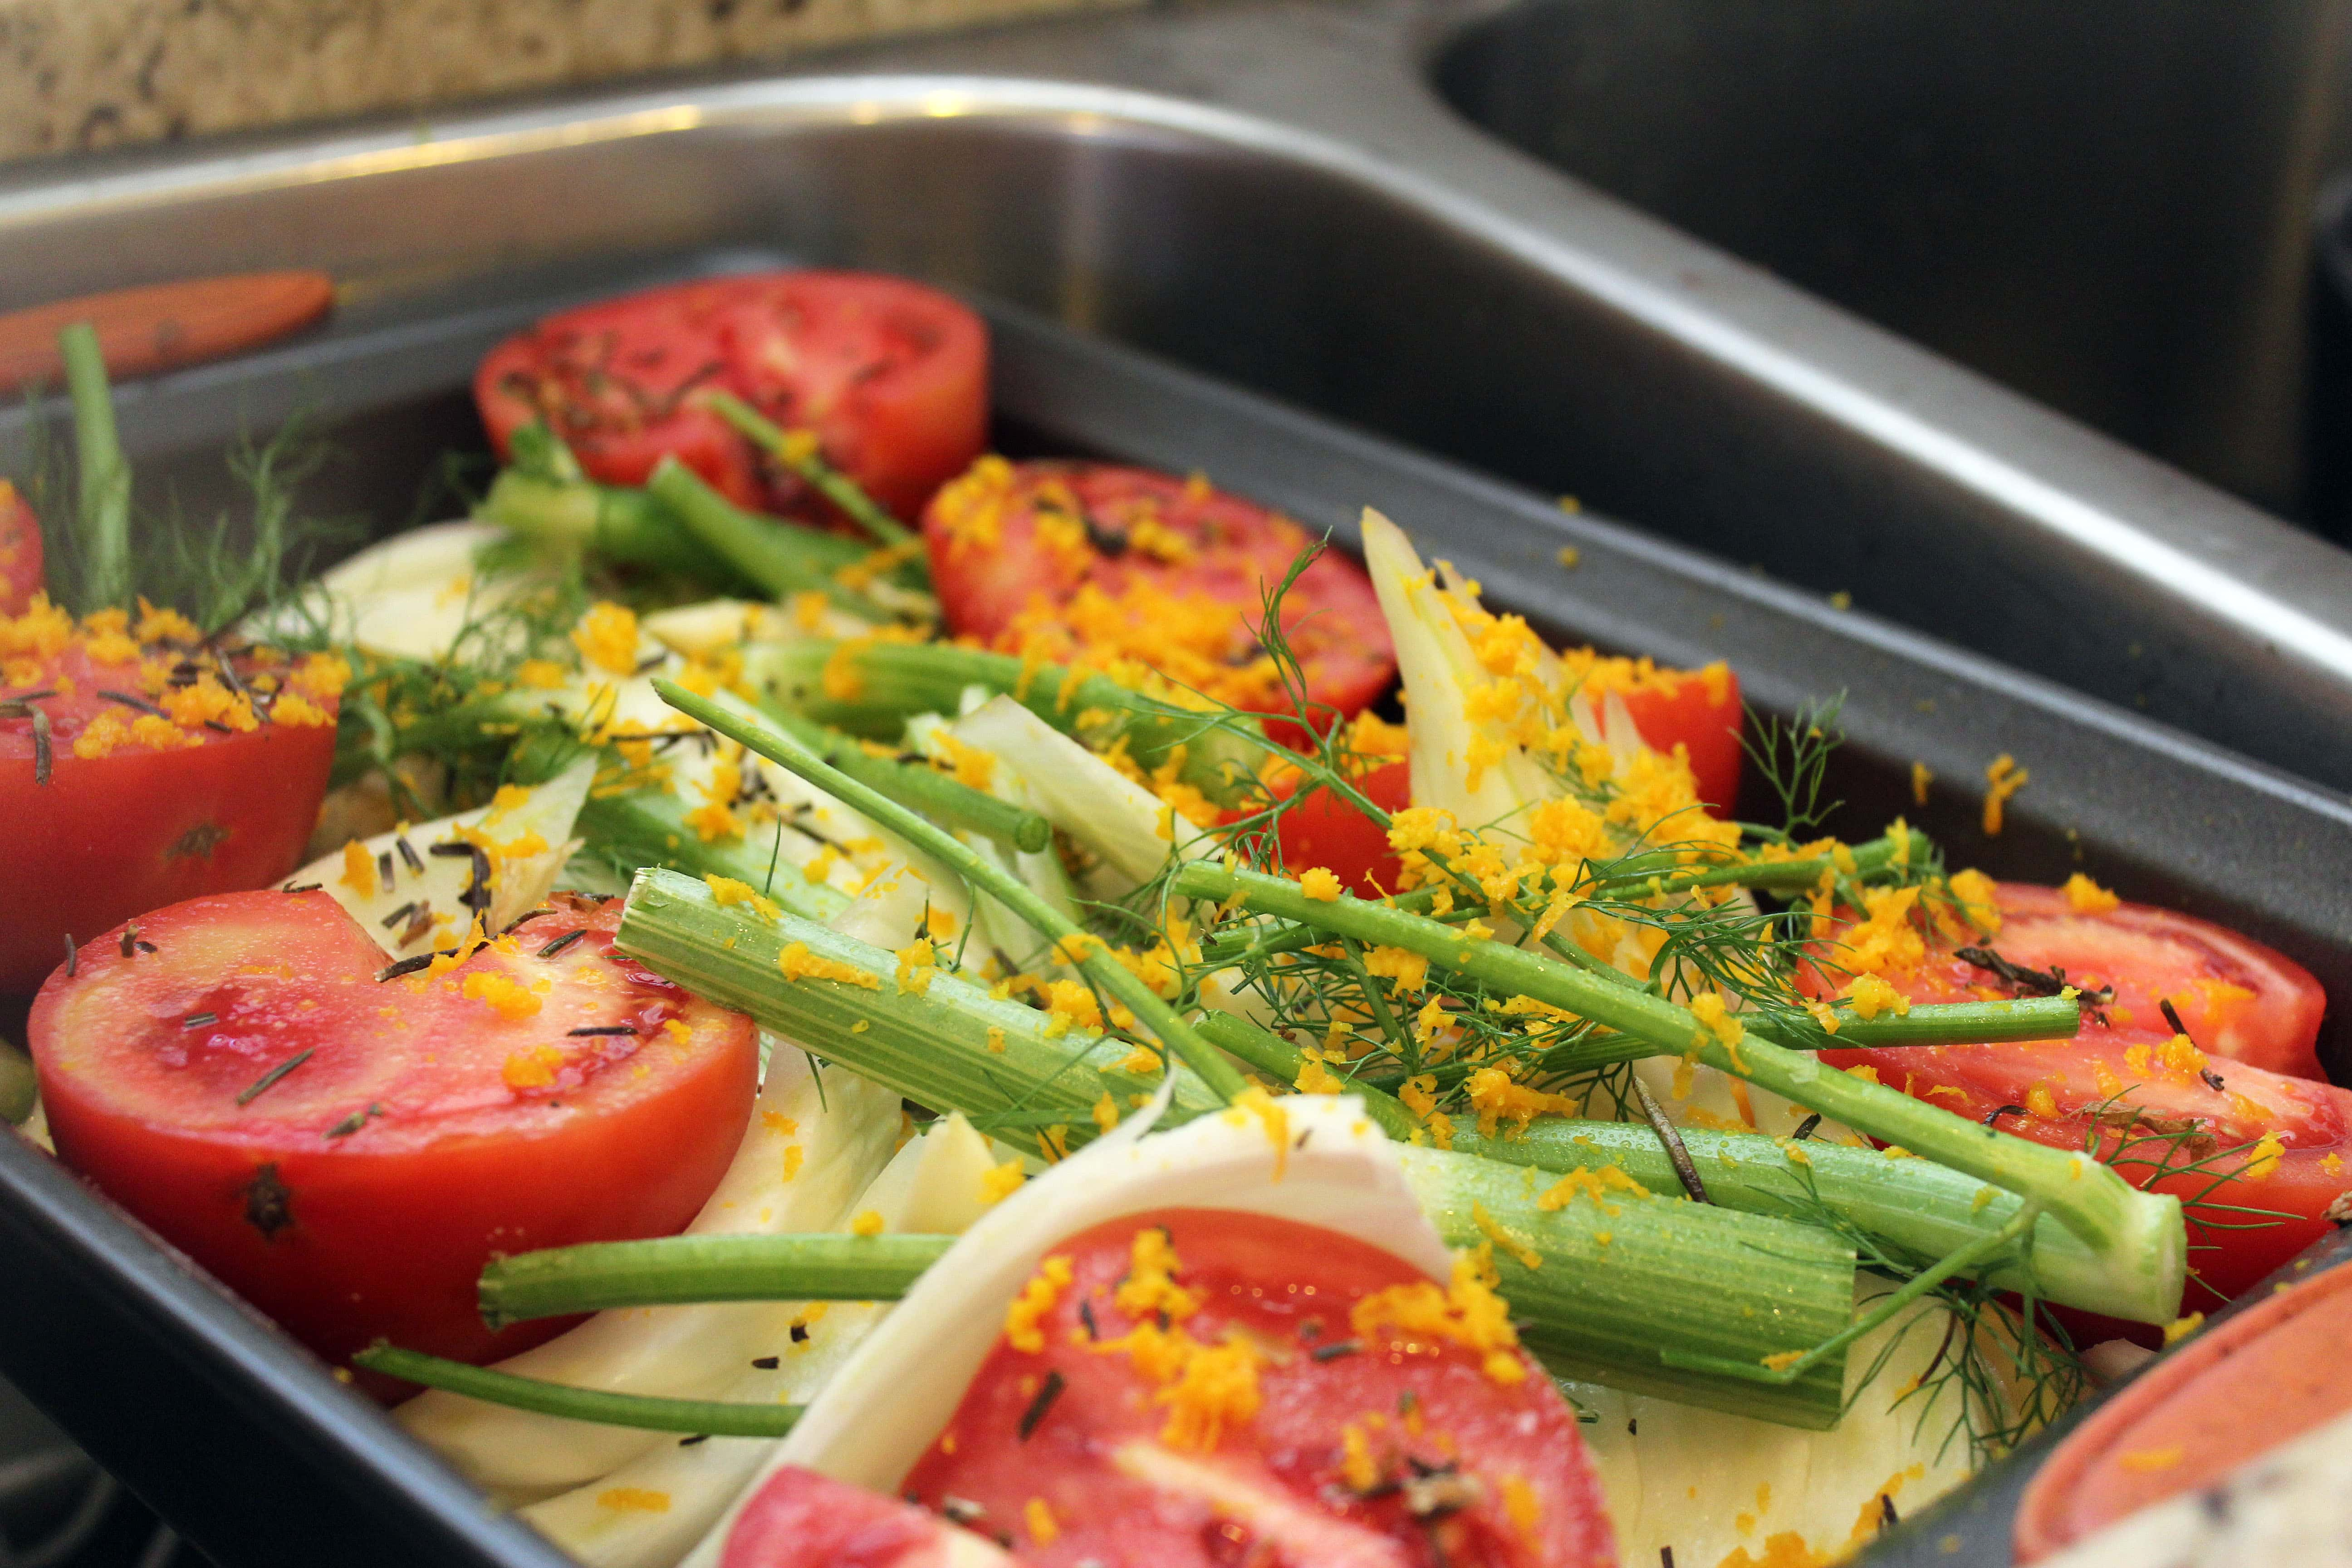 Add rosemary and salt and zest over veggies